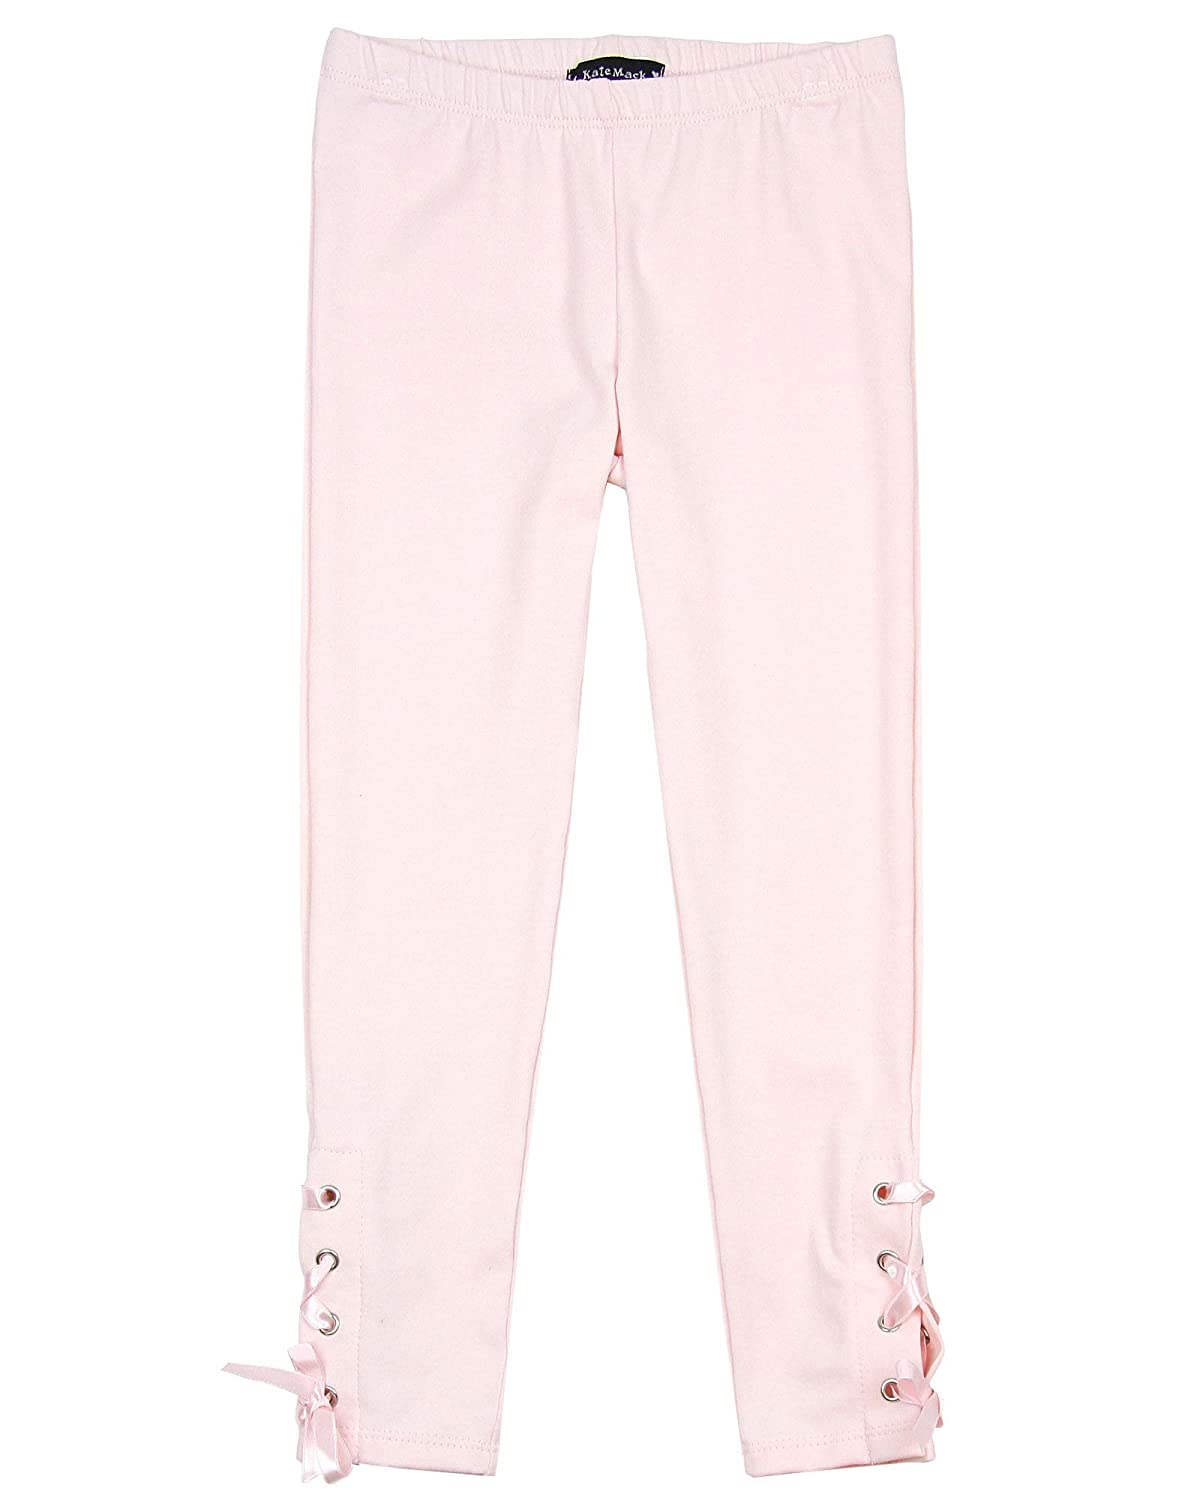 Sizes 4-10 Kate Mack Girls First Position Leggings with Laces in Pink